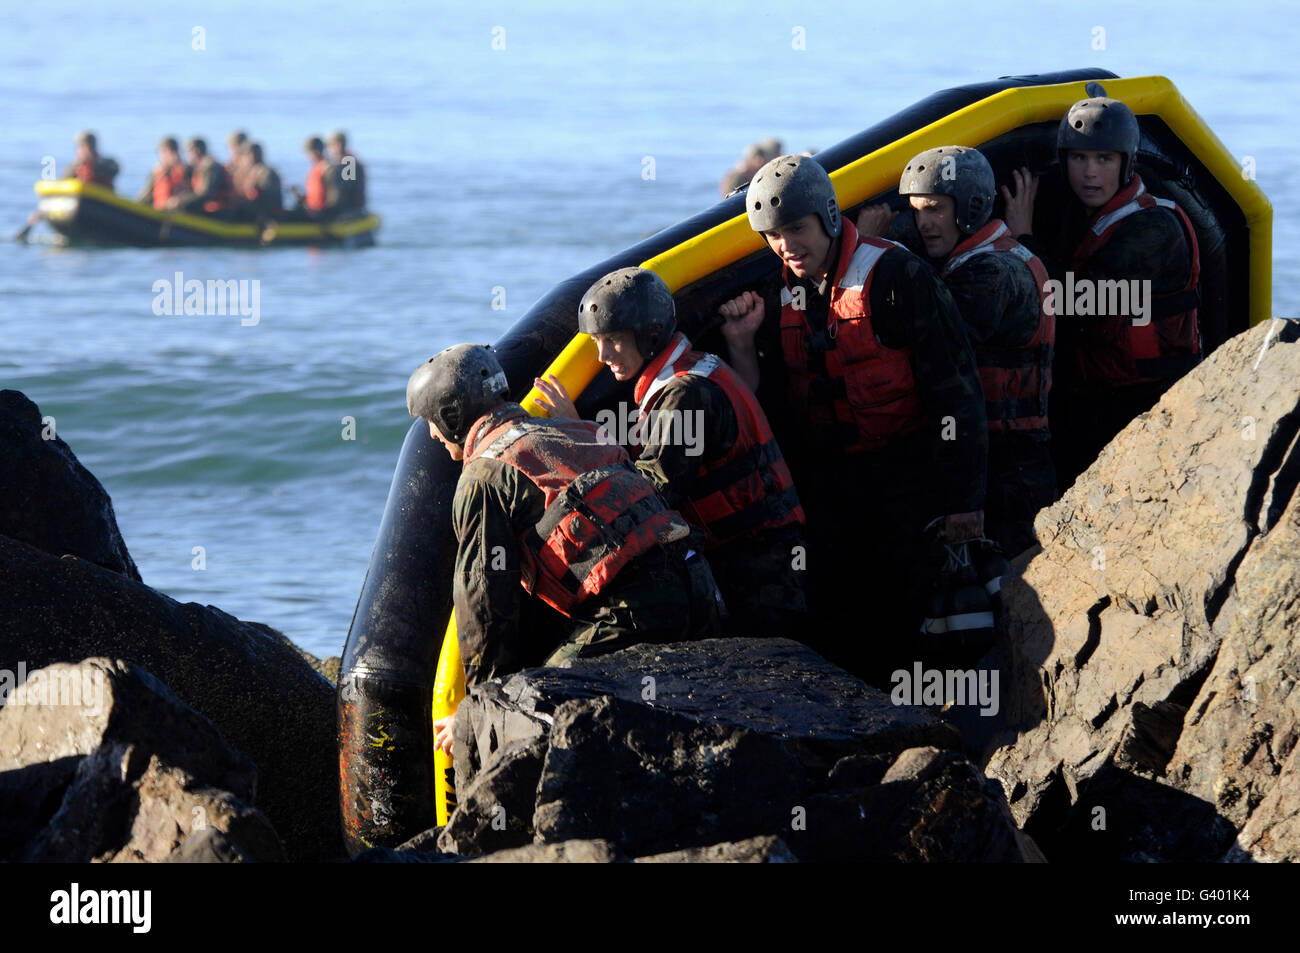 U.S. Navy SEAL candidates participate in a rock portage exercise. - Stock Image